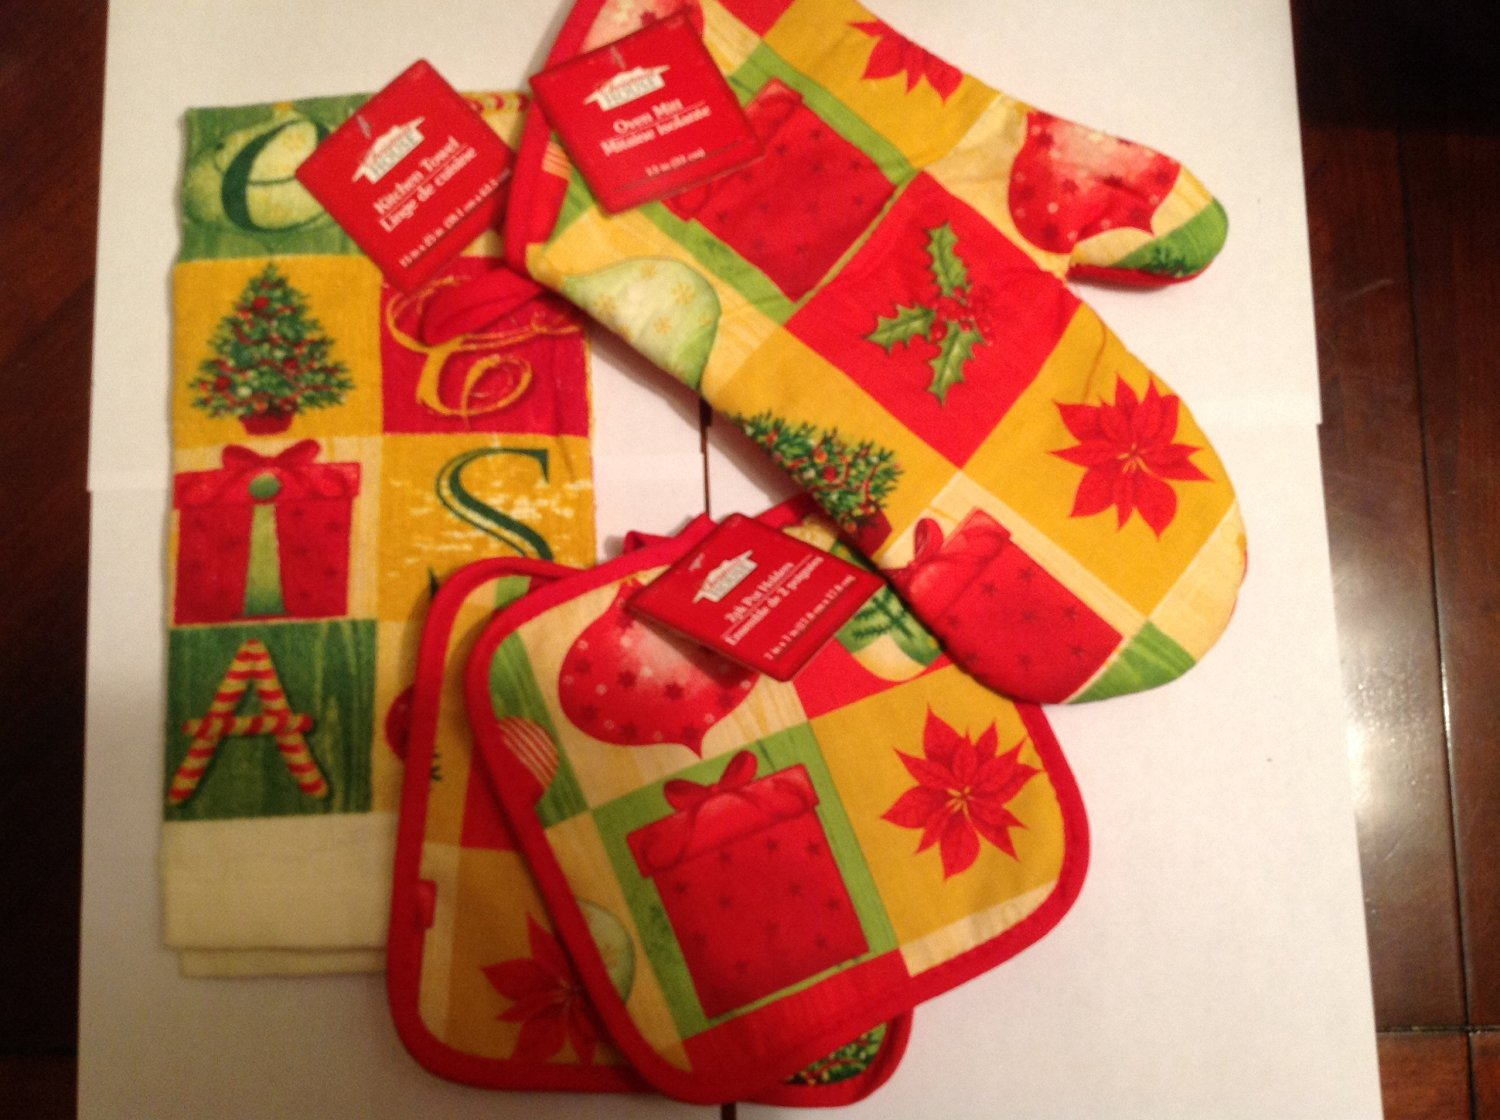 Christmas House Snowman Kitchen Linens Collections - 4 Items in Holiday Collection: 1 Oven Mit * 1 Kitchen Towel * 2 Pk Pot Holders